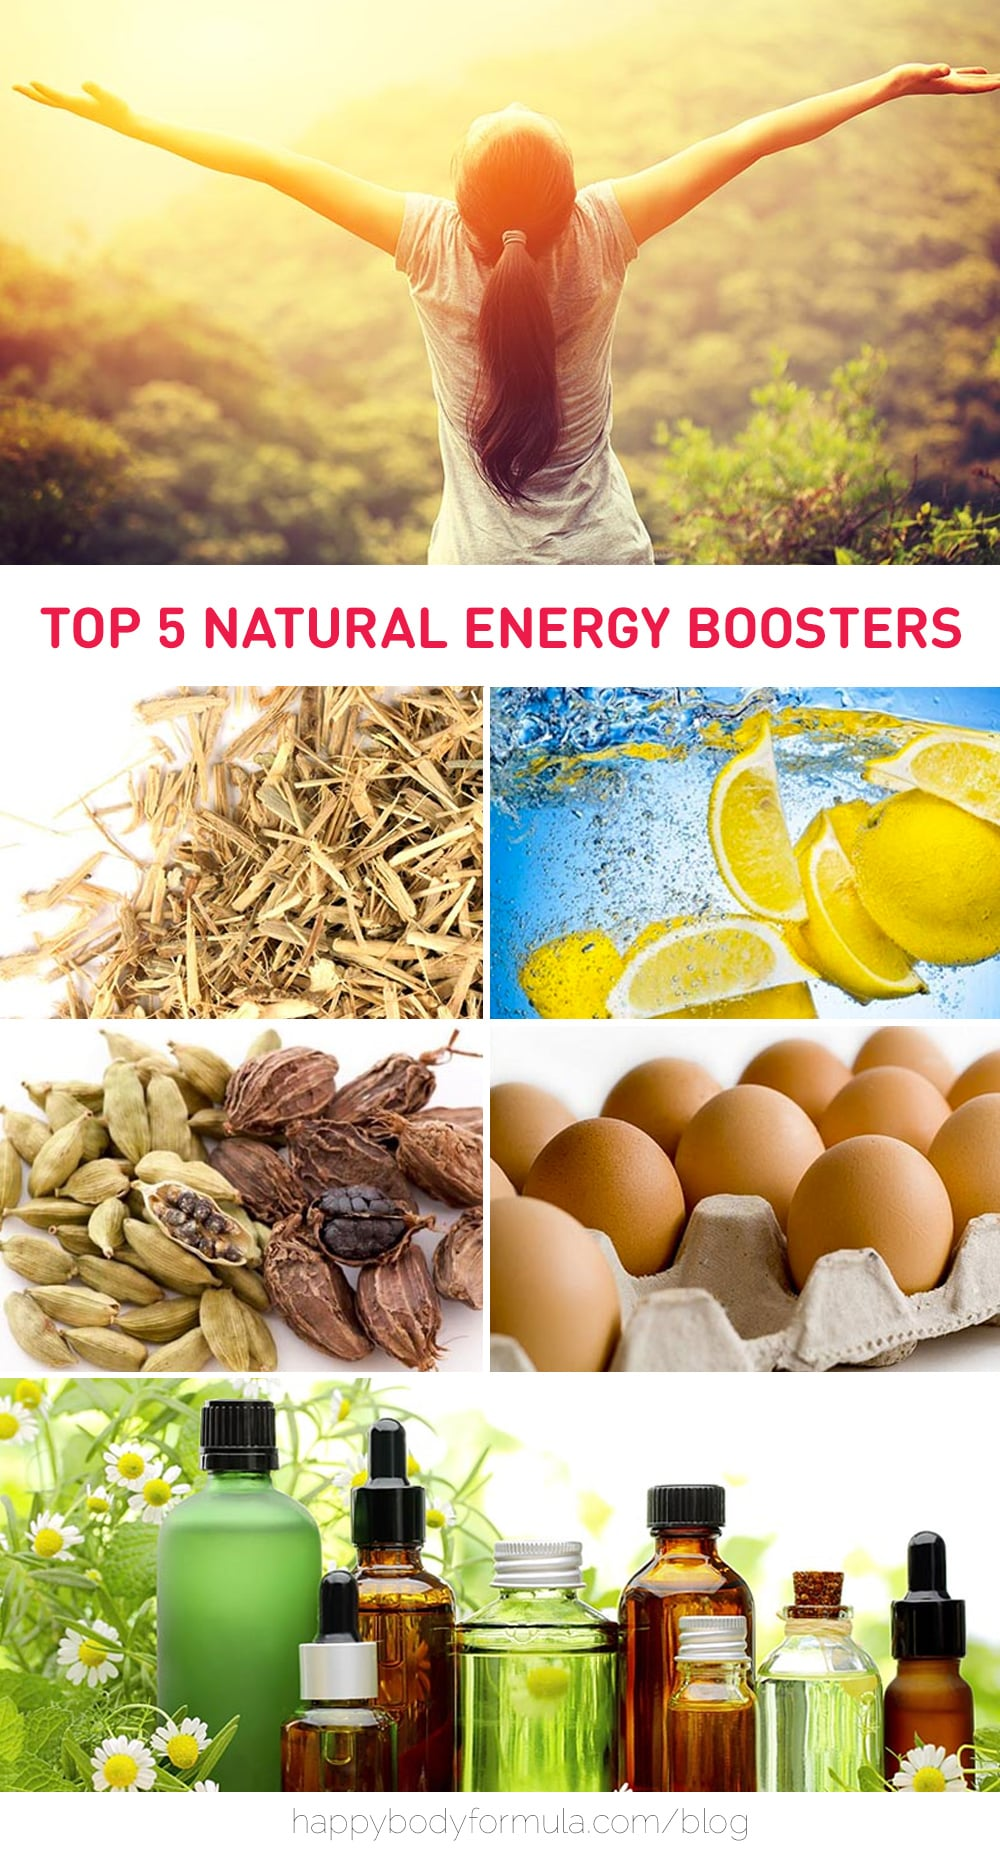 5 Natural Energy Boosters to Keep You Buzzing Throughout the Day | Happybodyformula.com